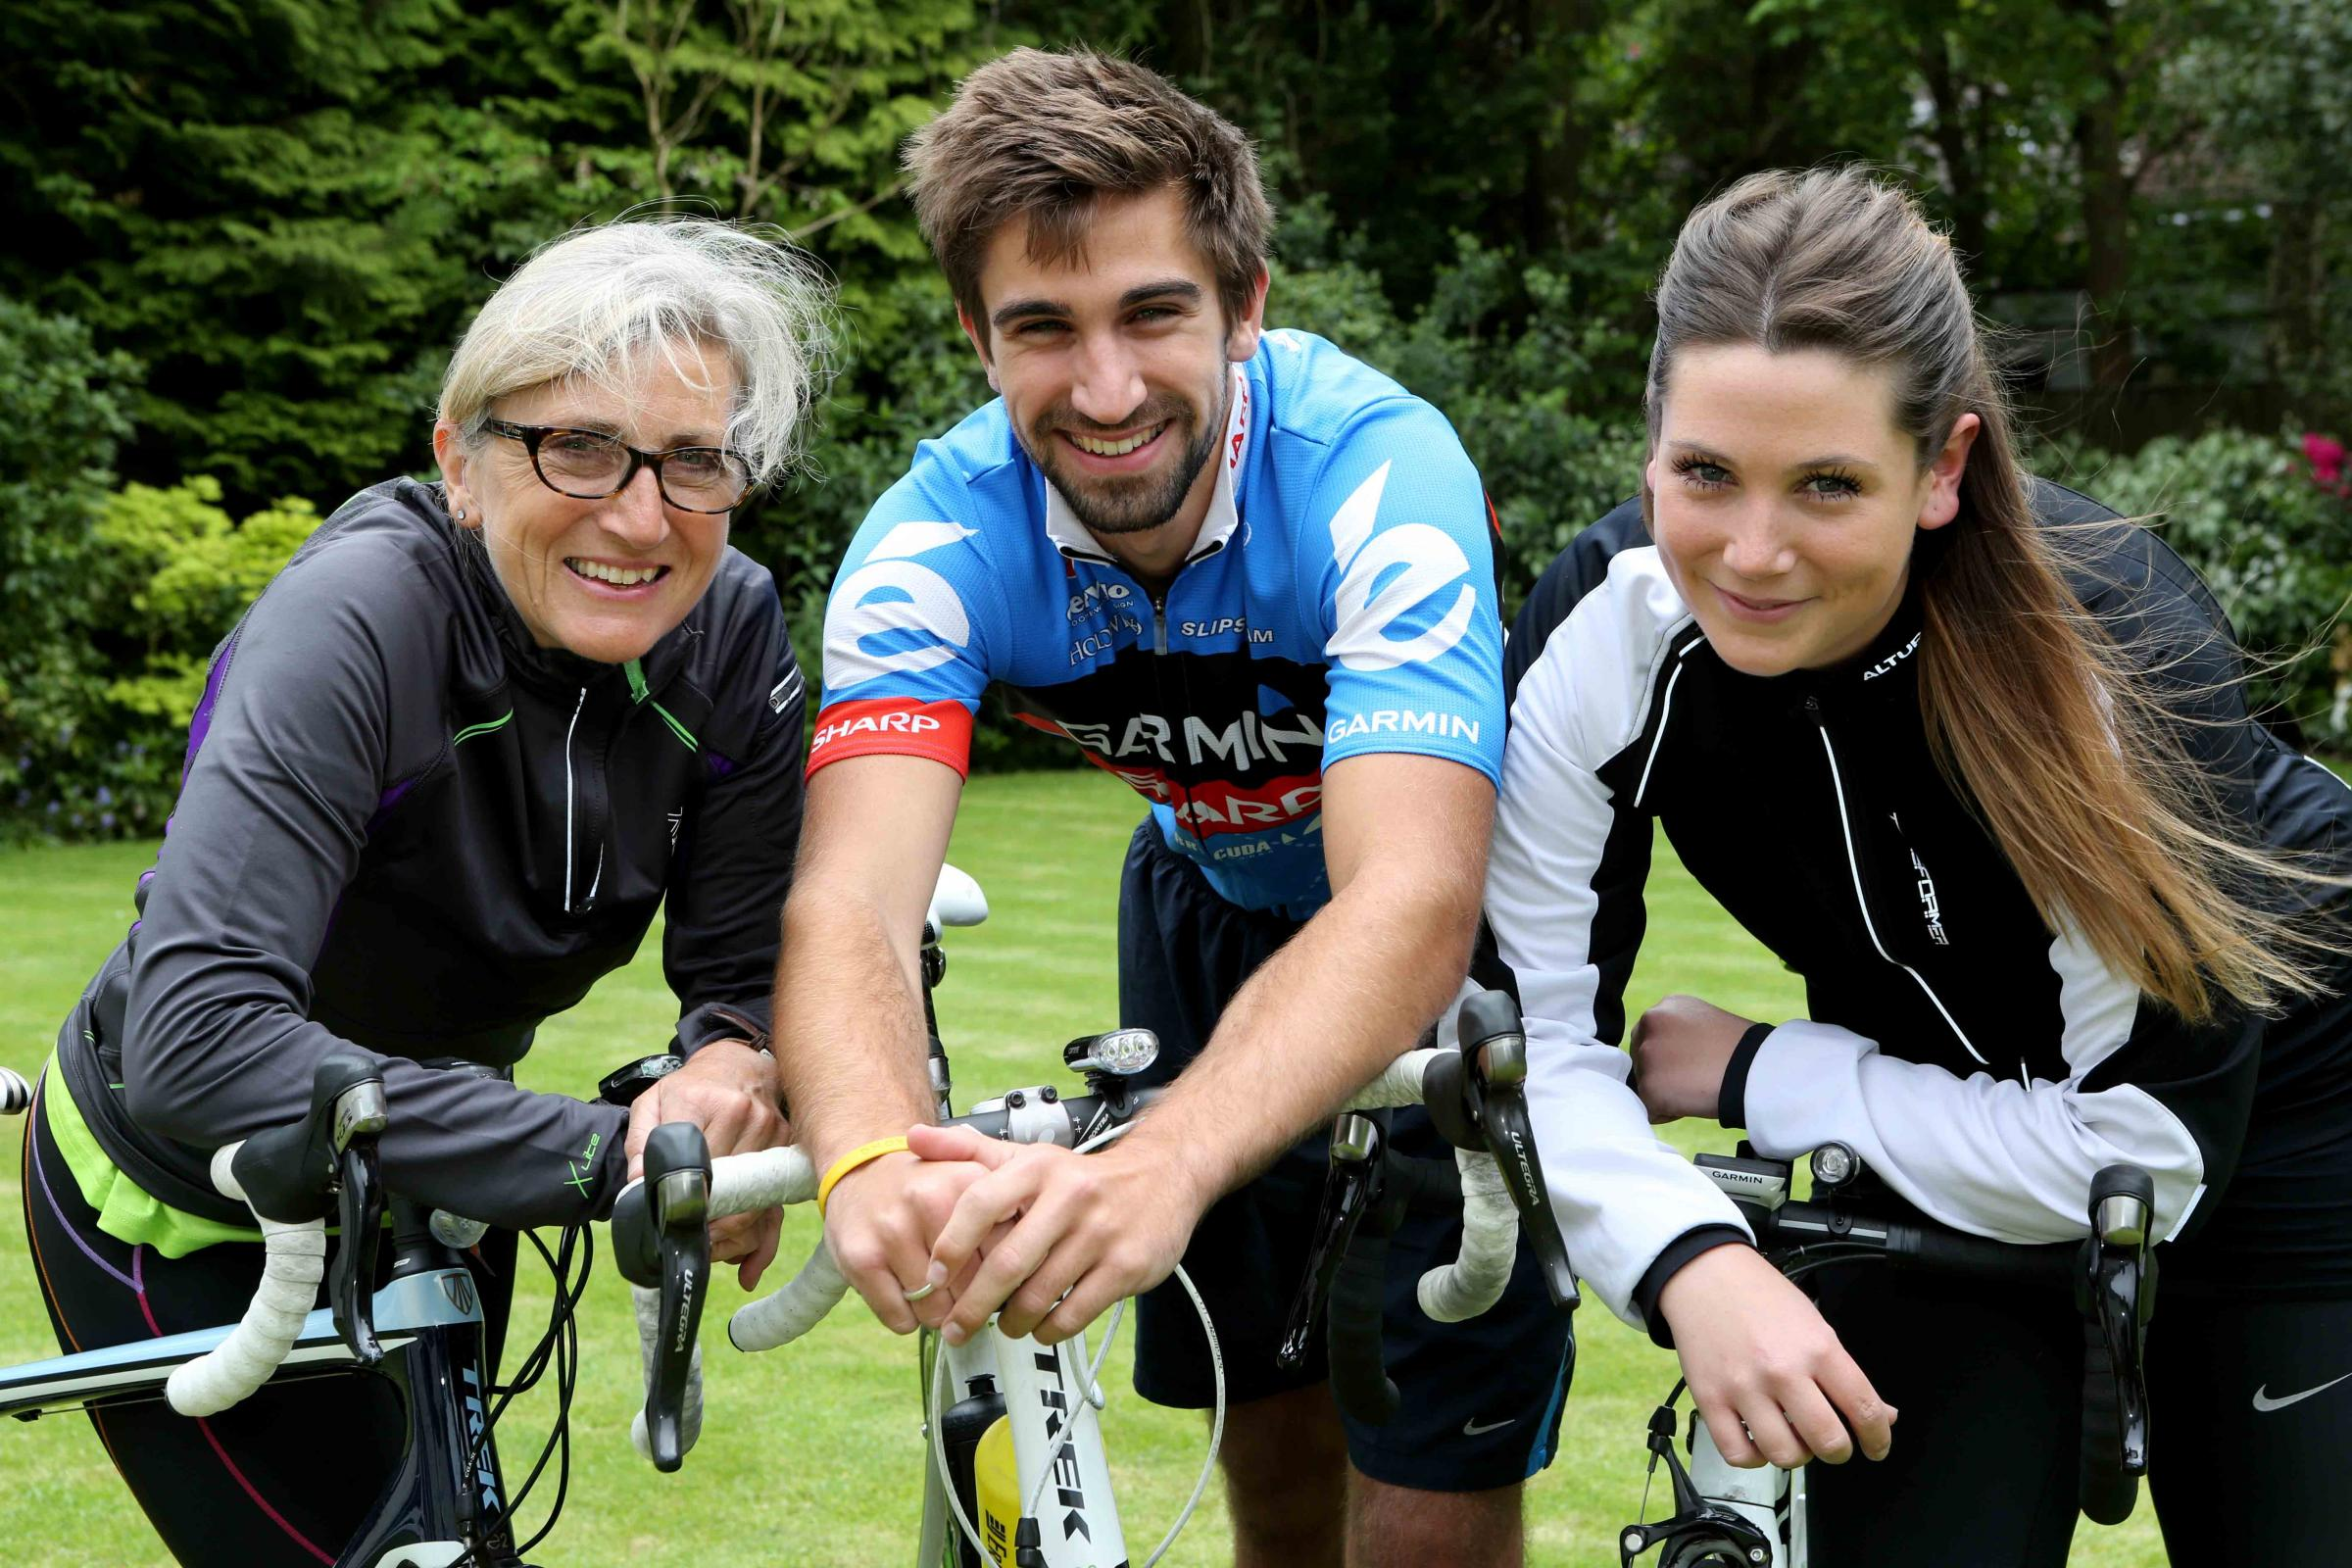 Wirral family take on world's toughest sporting challenge for Claire House